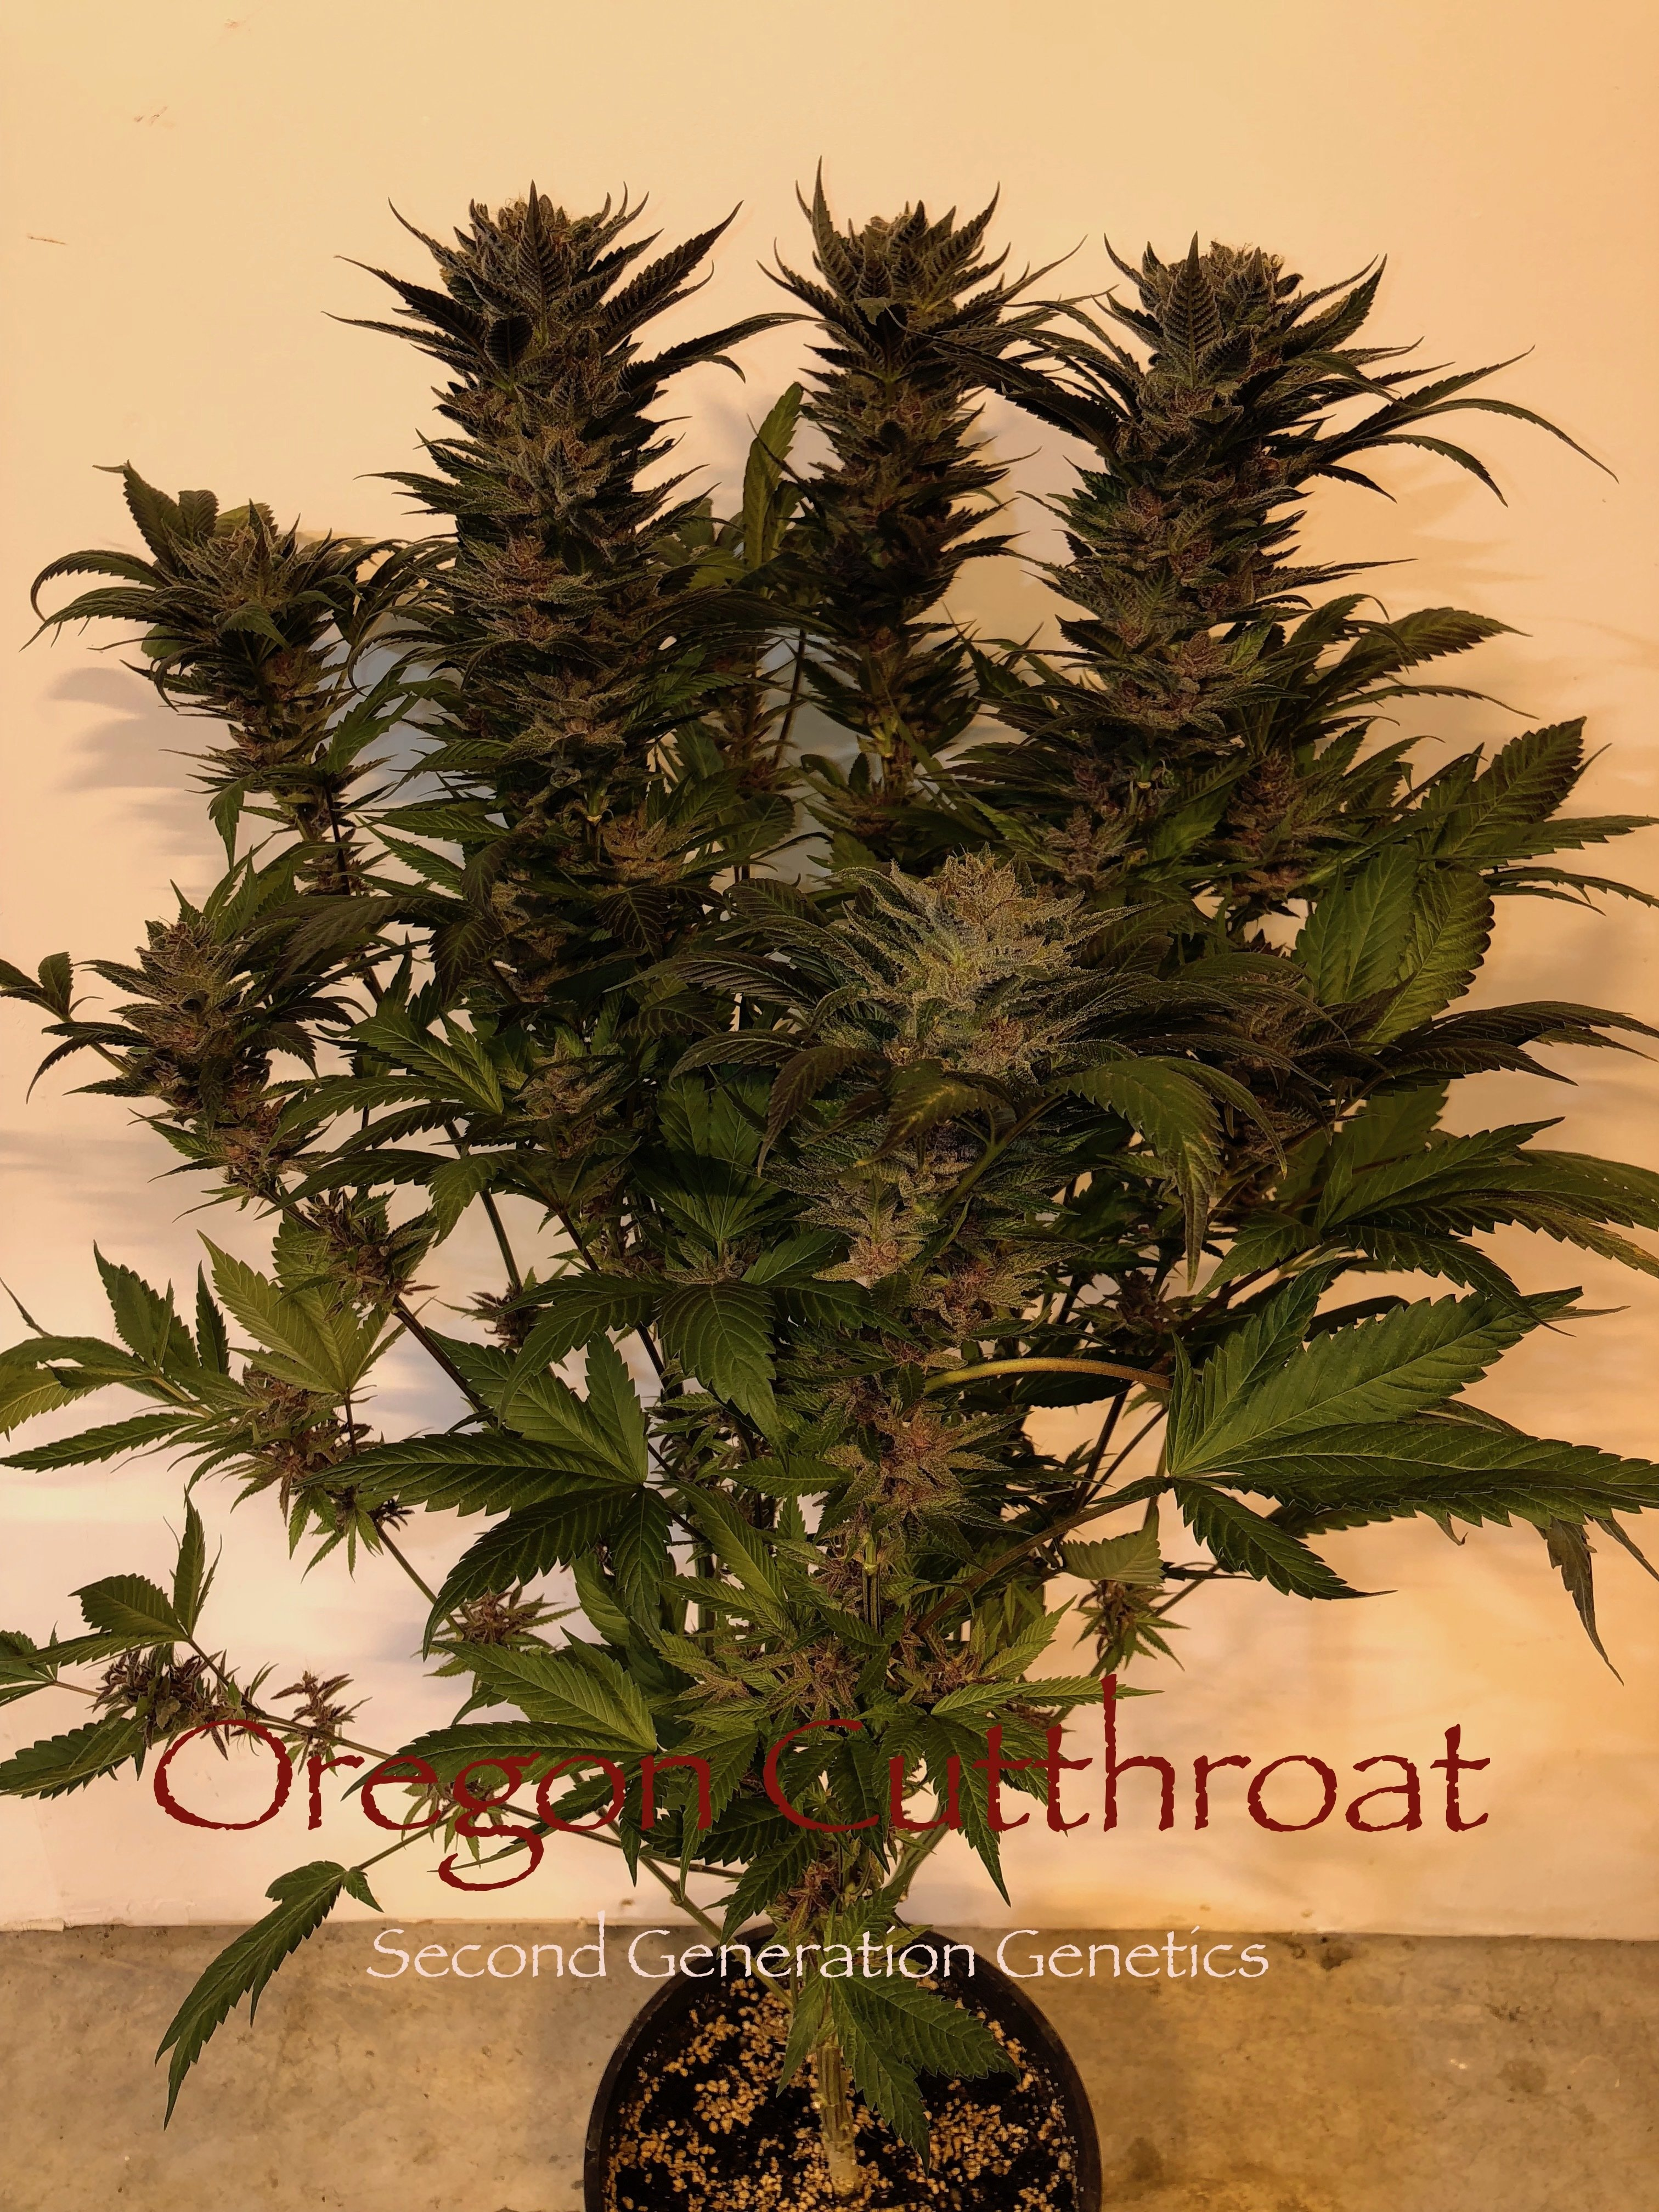 Oregon Cutthroat (Black Rose #3 x F4 Blueberry) *LIMITED EDITION* 10 Regular Seeds